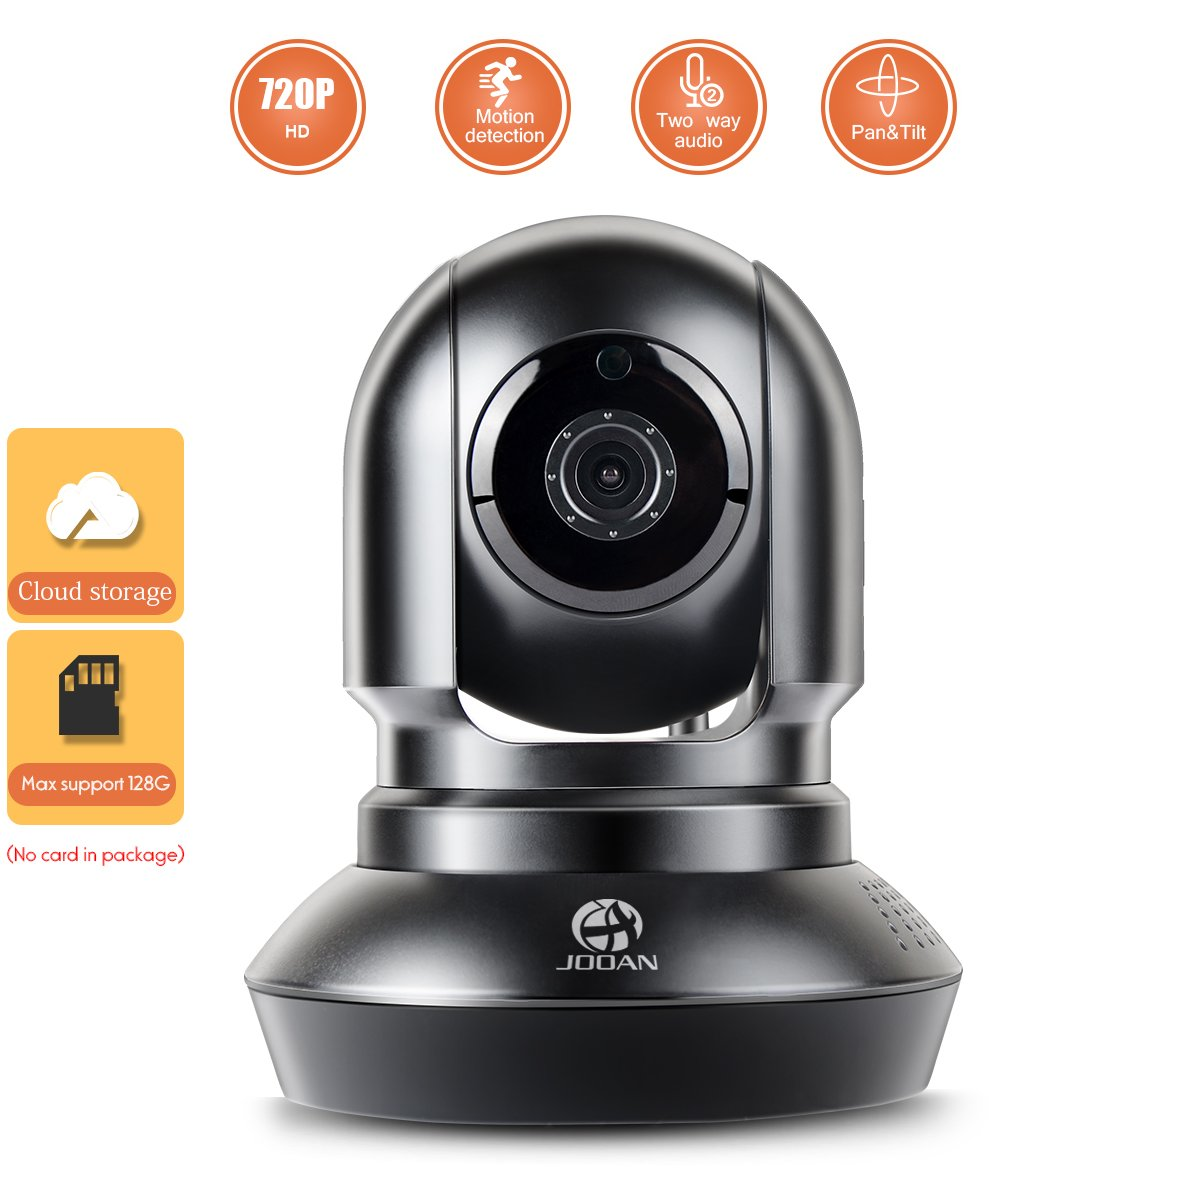 Security Camera, JOOAN IP Camera HD 1080P IP Camera Video Monitoring Security Surveillance with Two-way Audio - home security JA-770